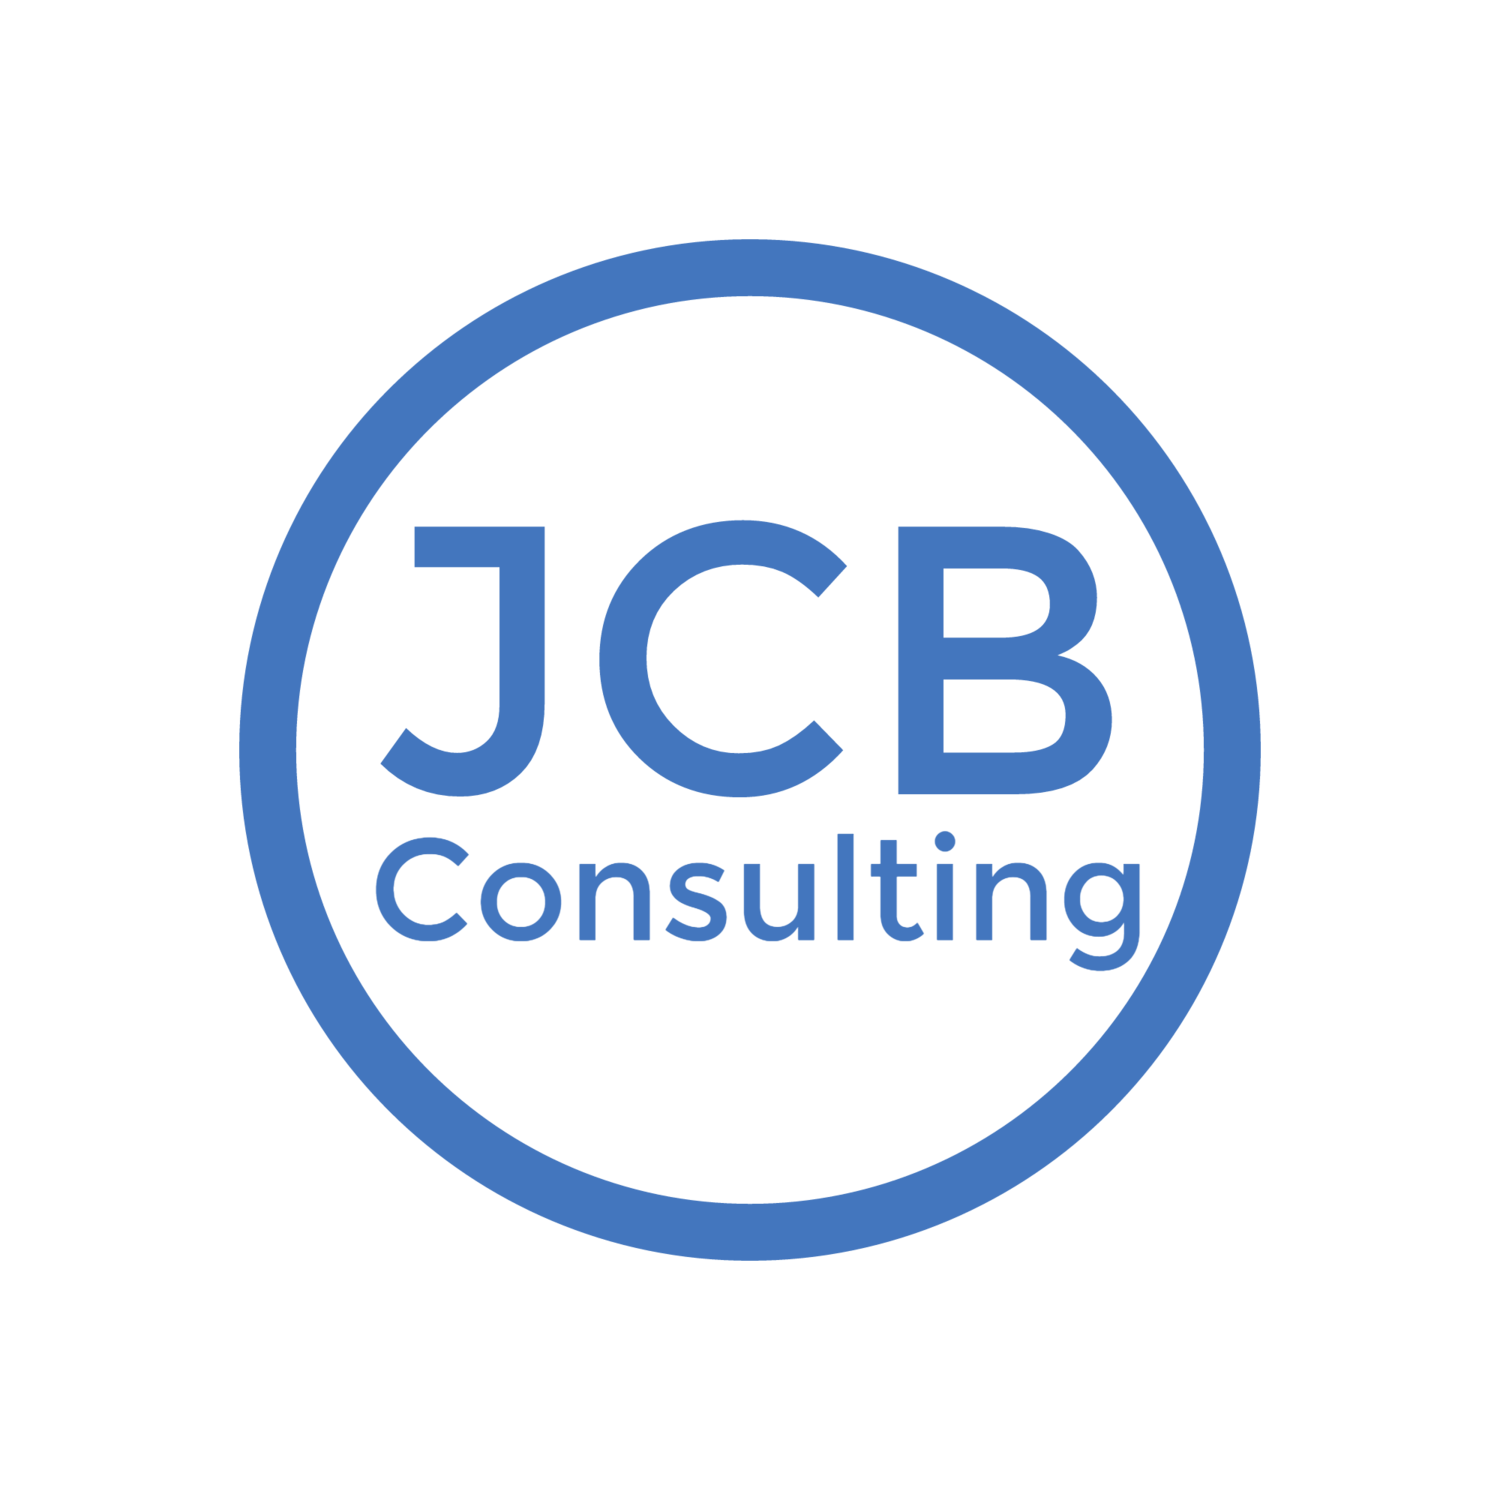 JCB Consulting